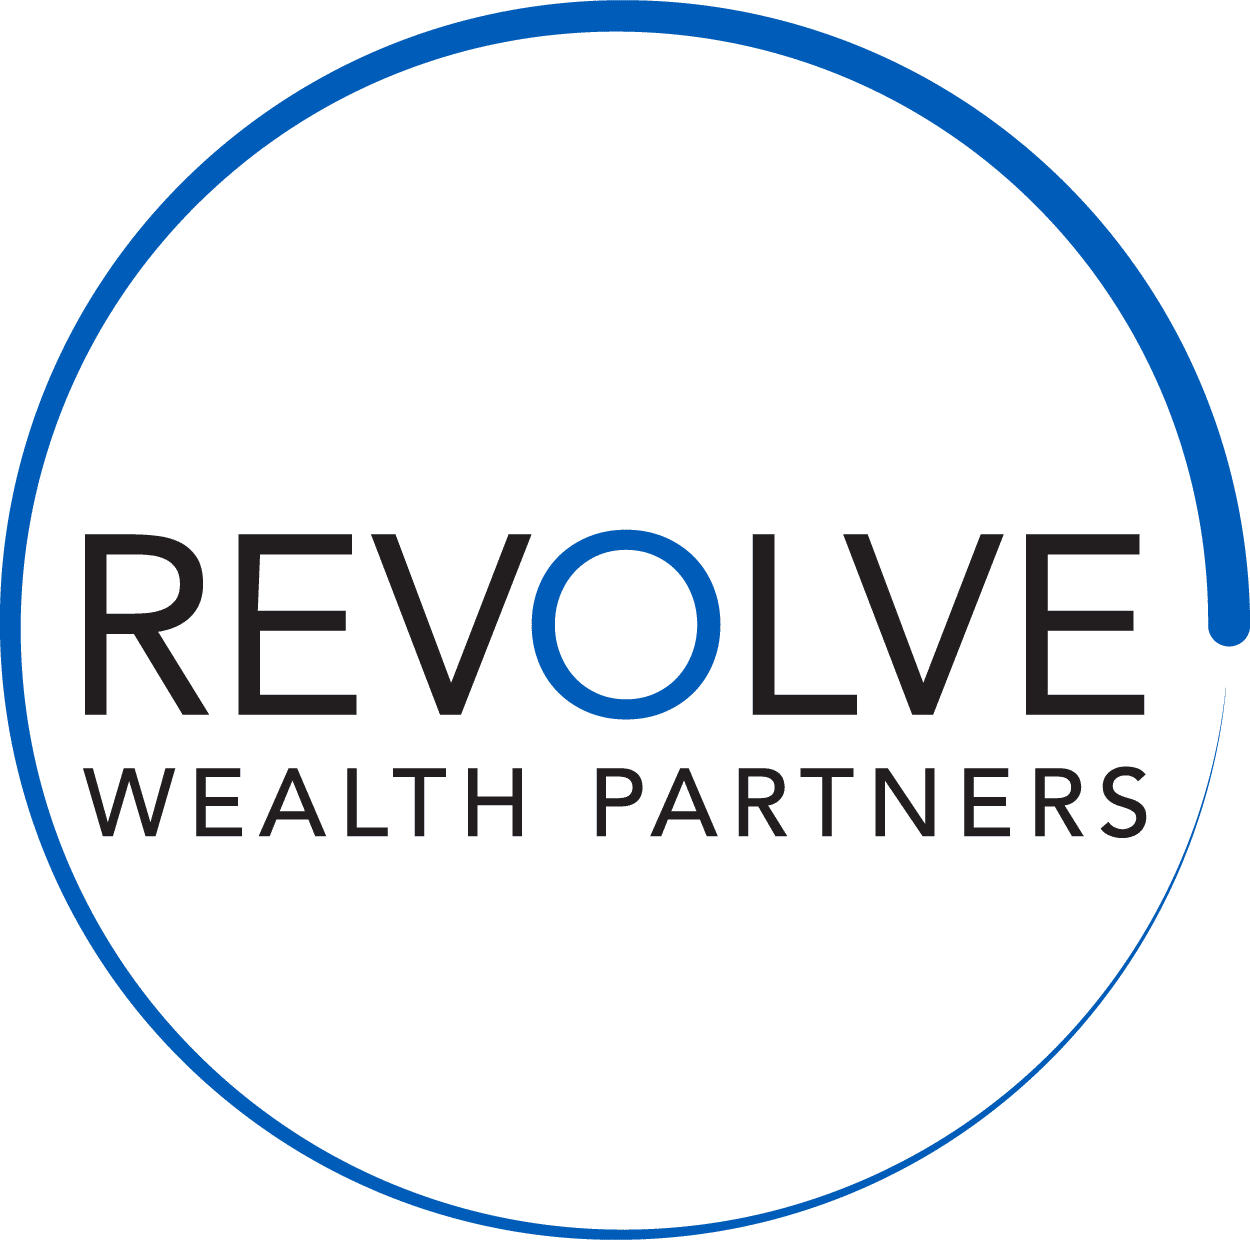 Revolve Wealth Partners logo